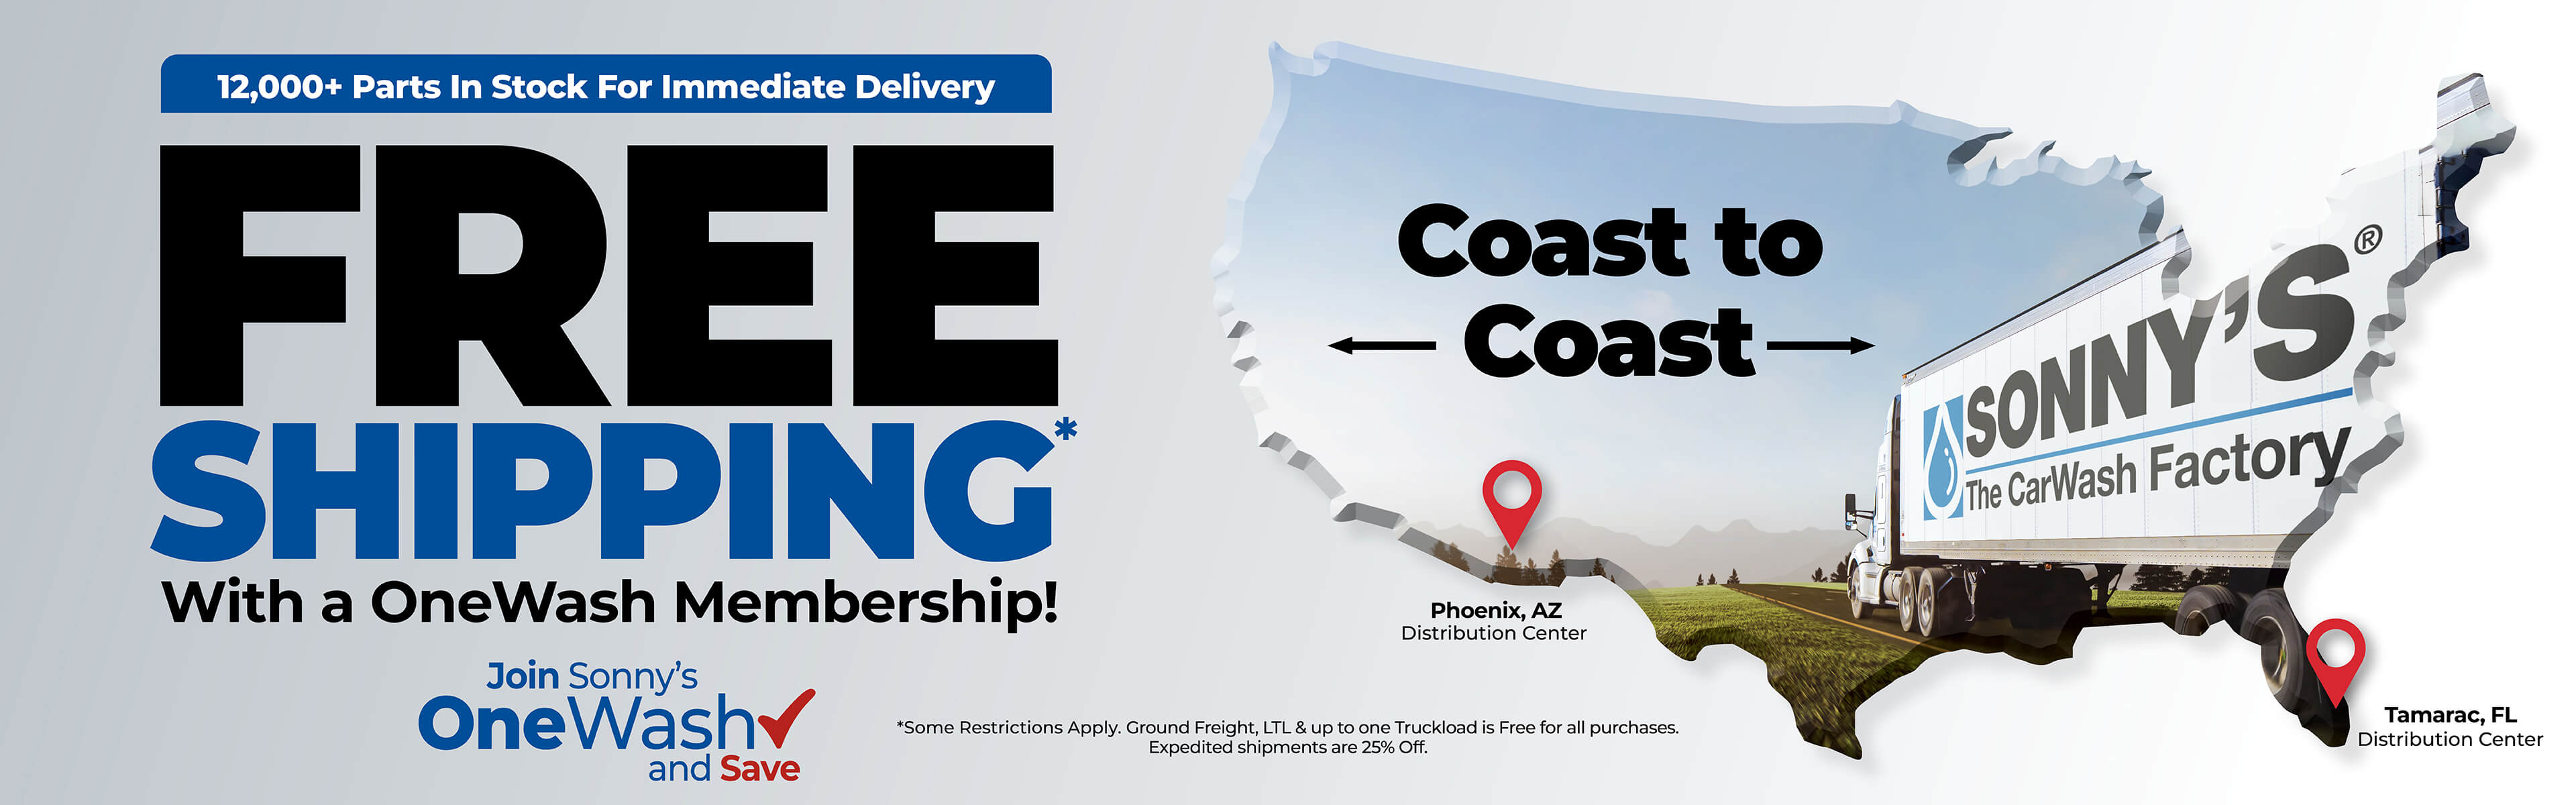 FREE Shipping. With a OneWash Membership!